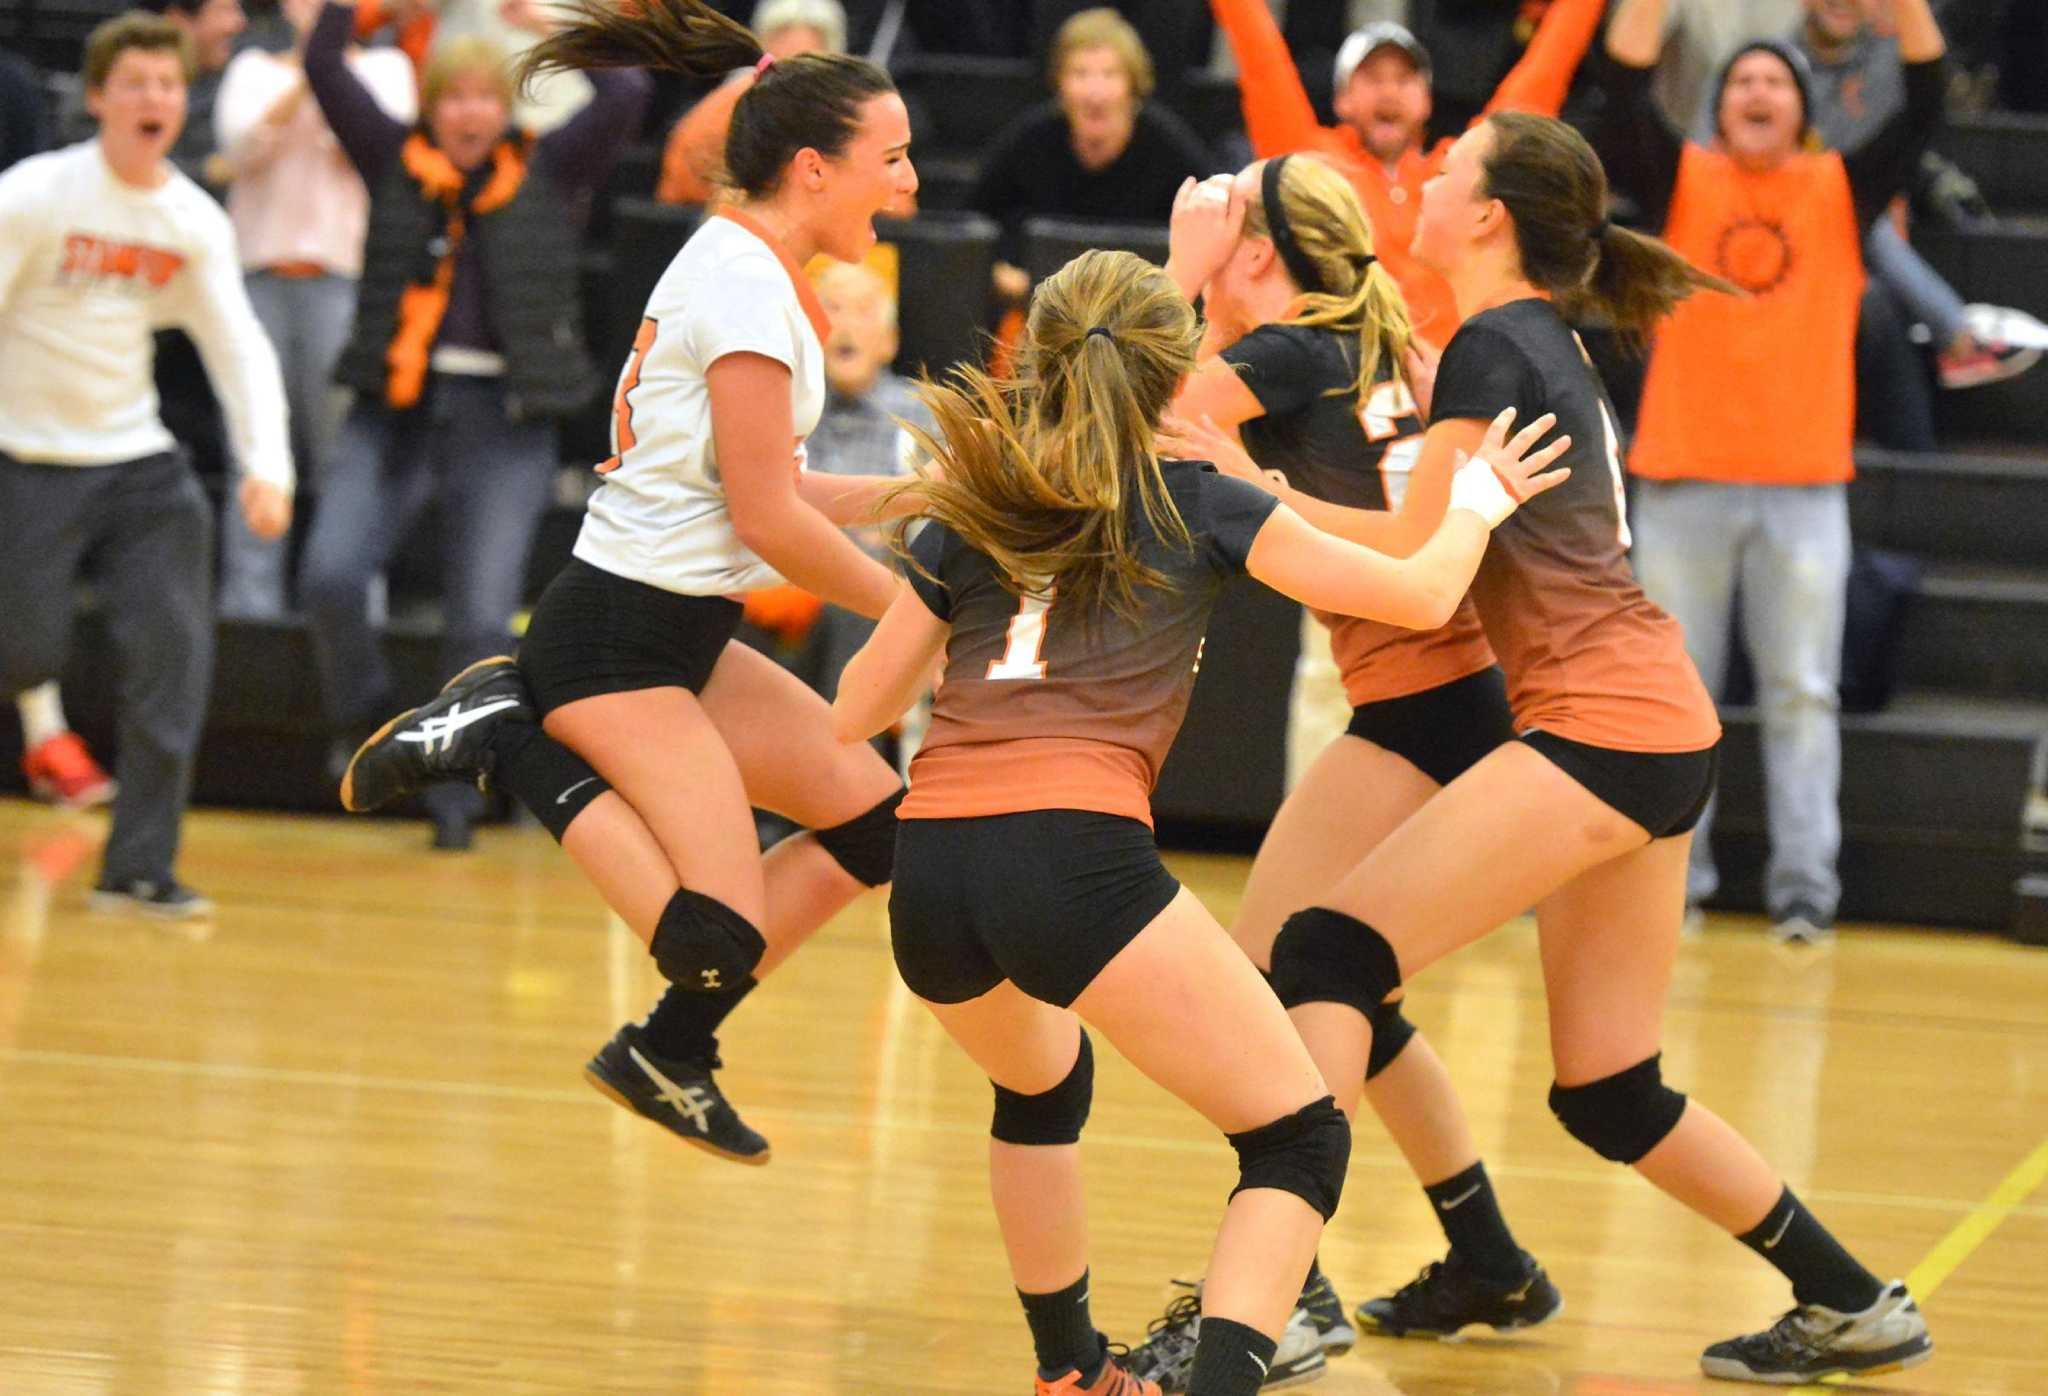 Stamford sweeps Amity to reach state volleyball final - Connecticut Post